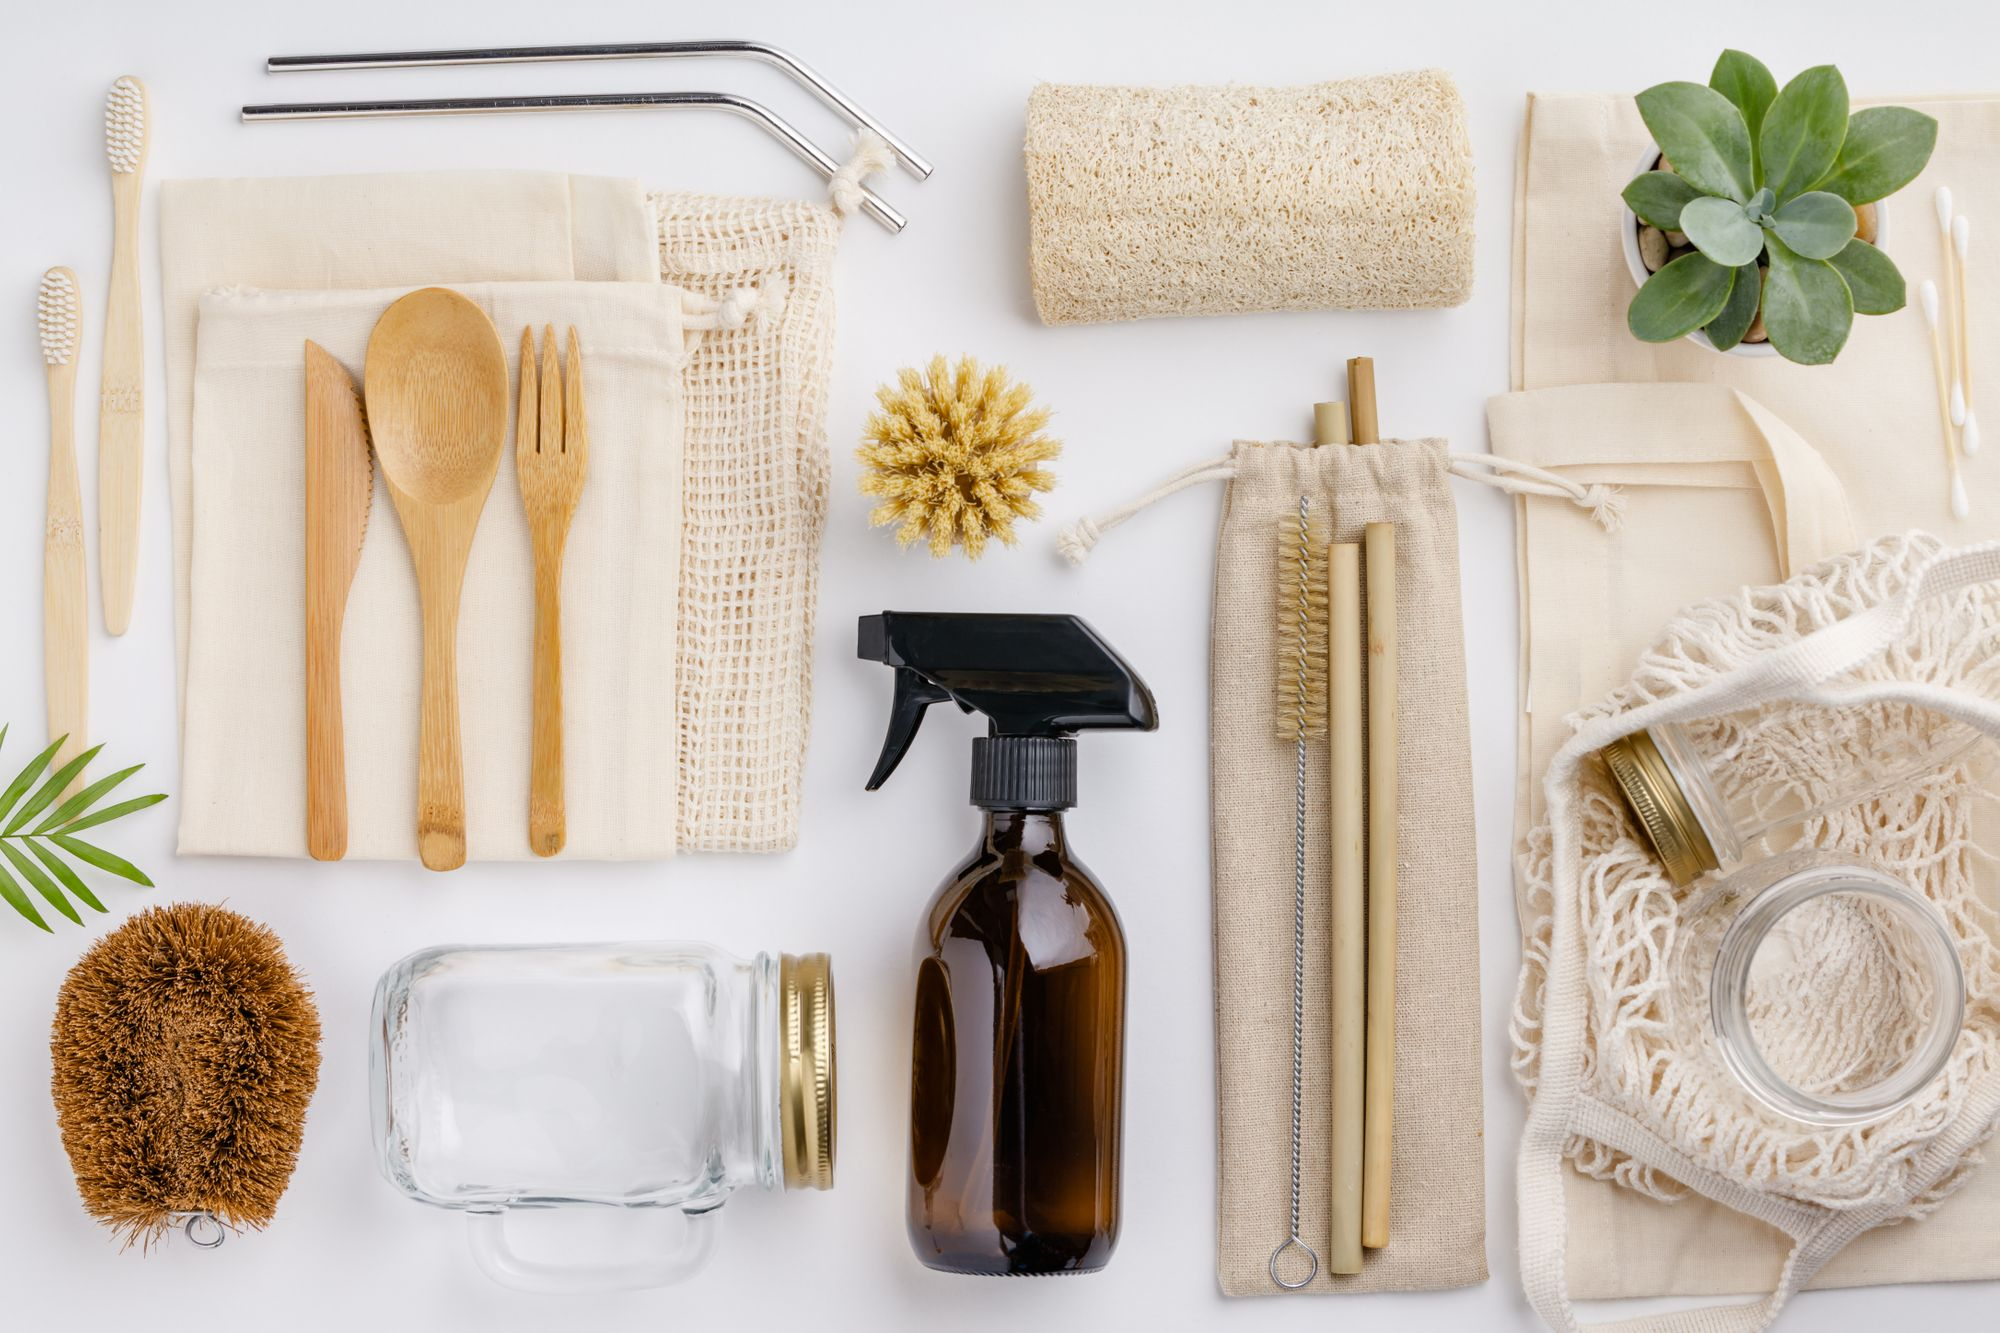 How to Find a Manufacturer for Your Eco-Friendly Product Idea